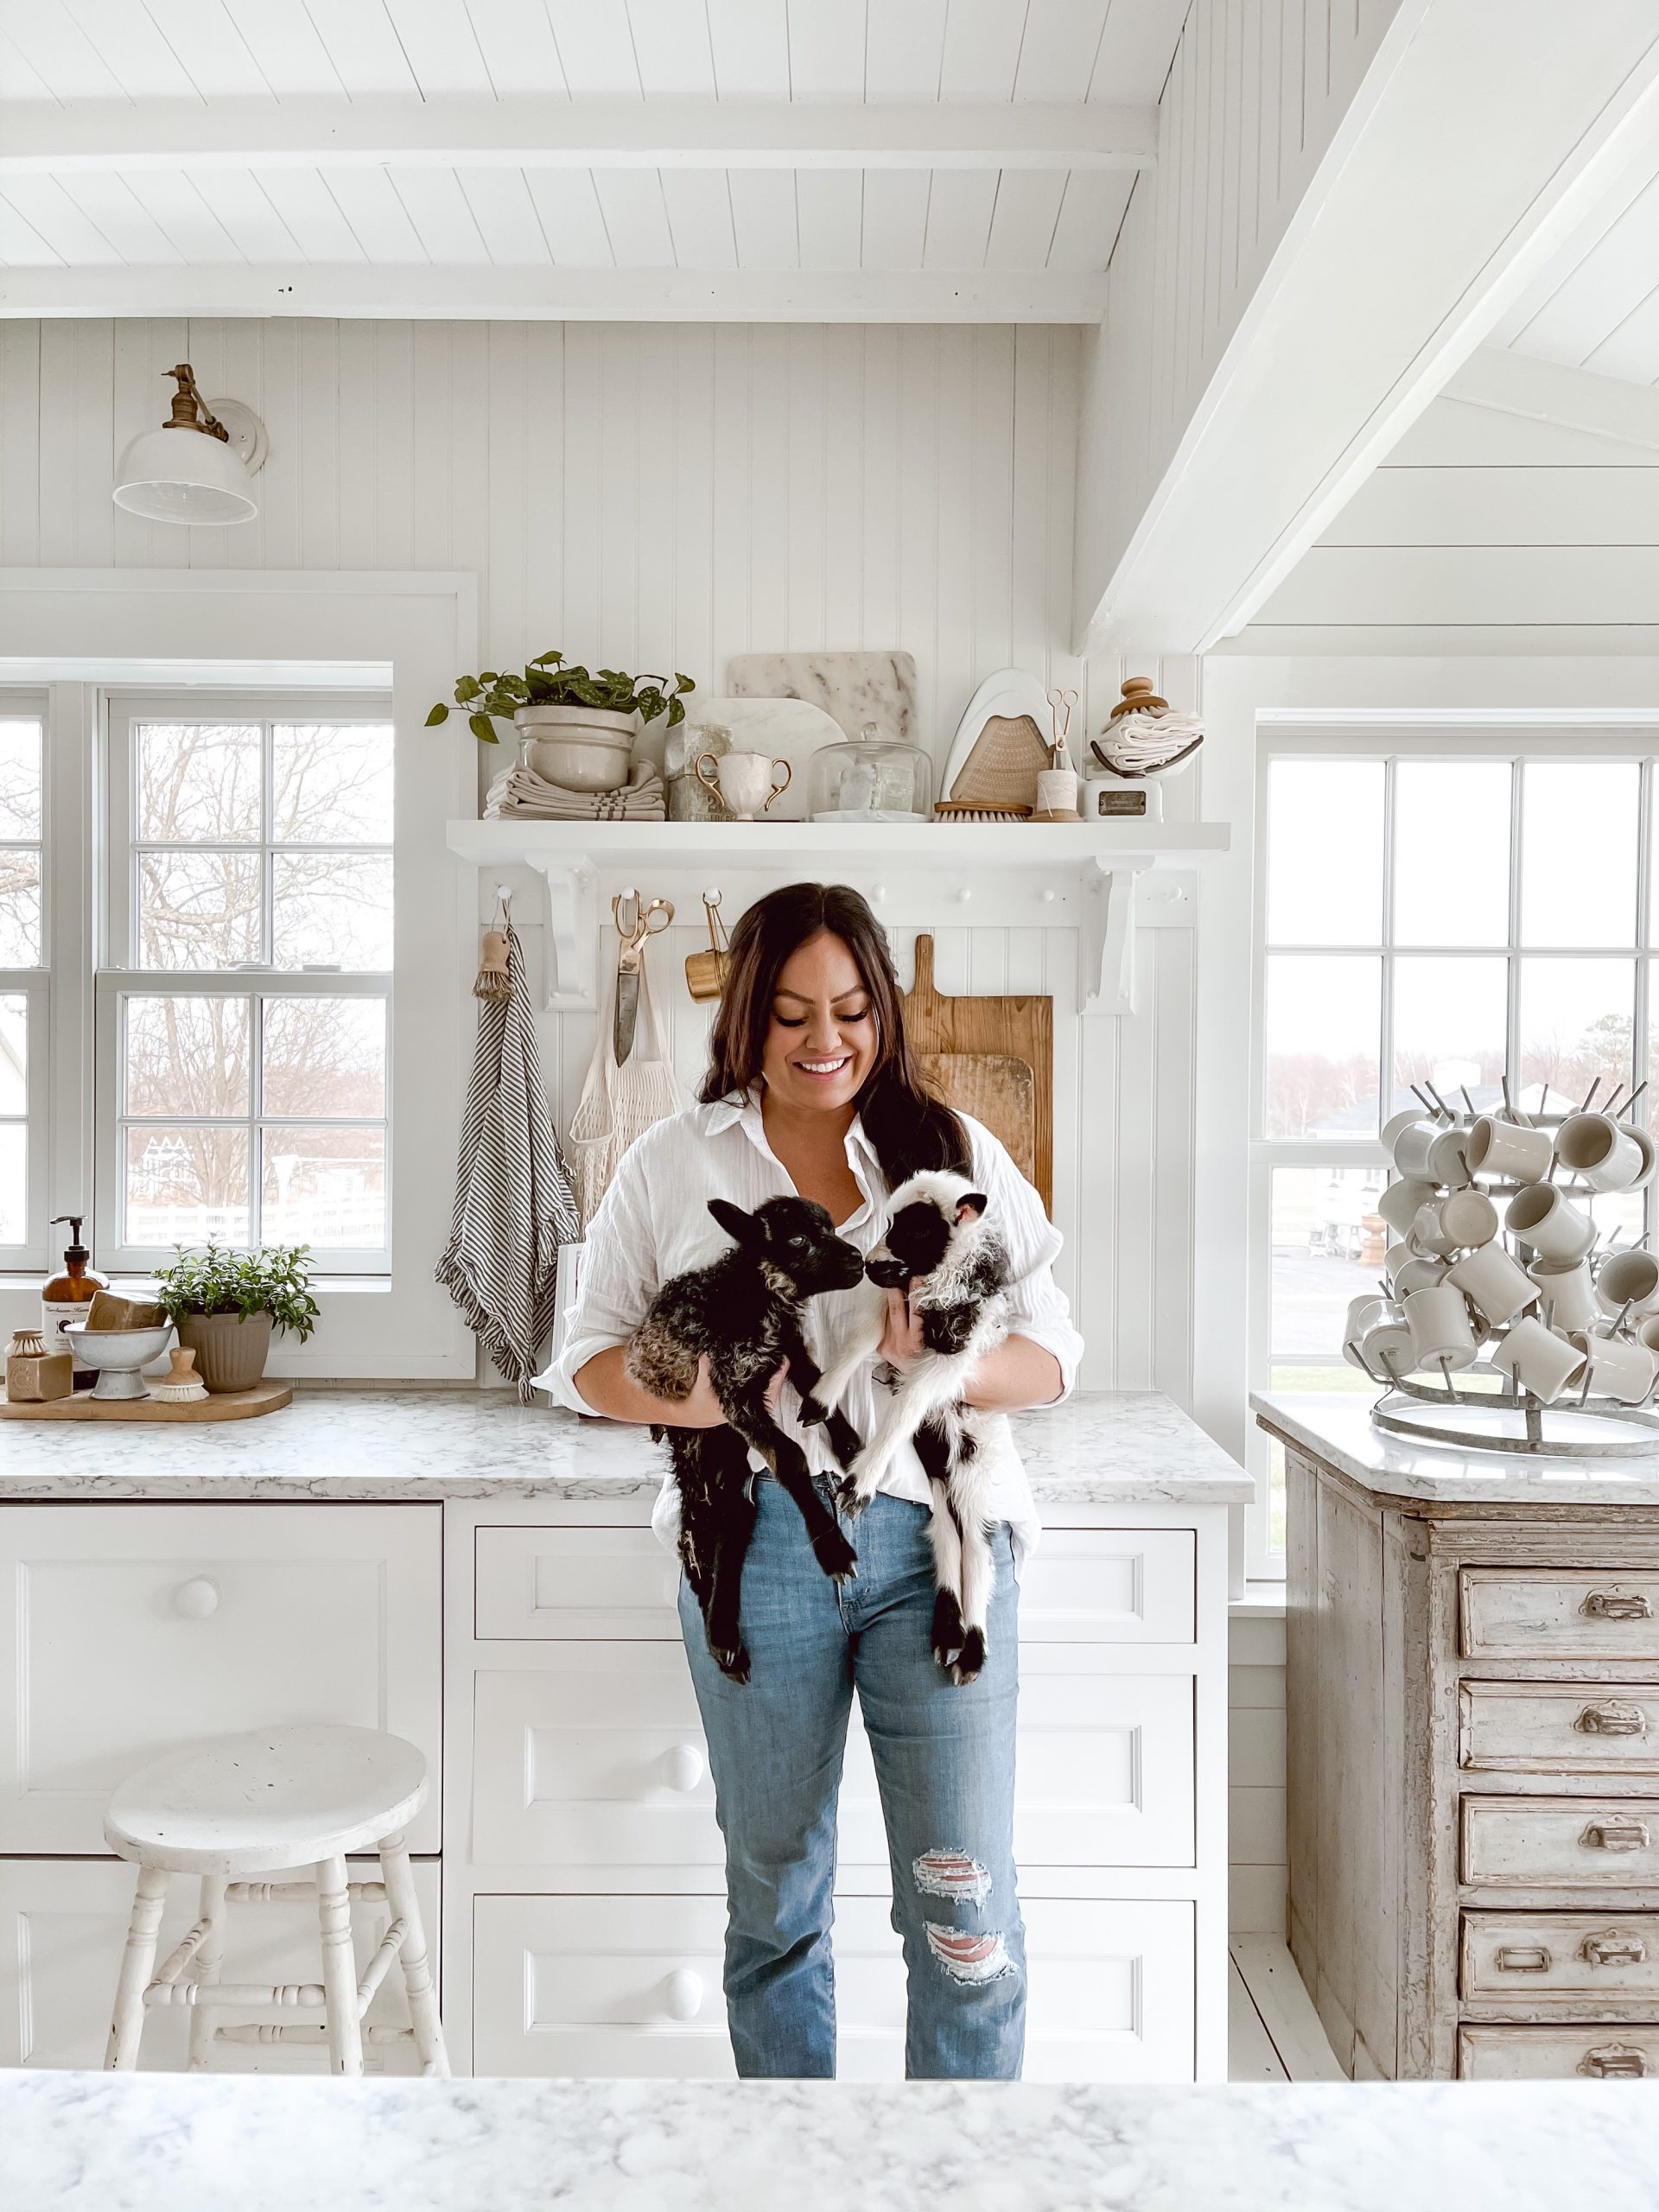 Favorite Things Friday: A Spring Mantel, New Lambs, and a Big Announcement Sunday!